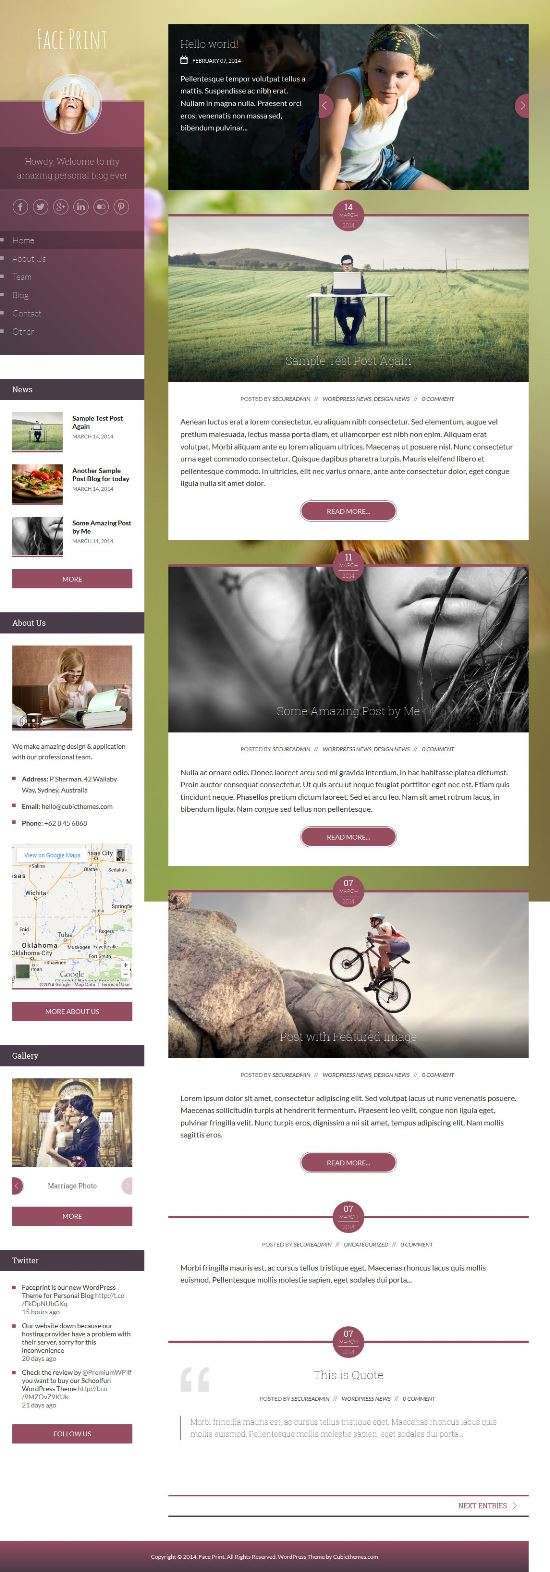 faceprint cubicthemes blog - FacePrint Premium WordPress Theme